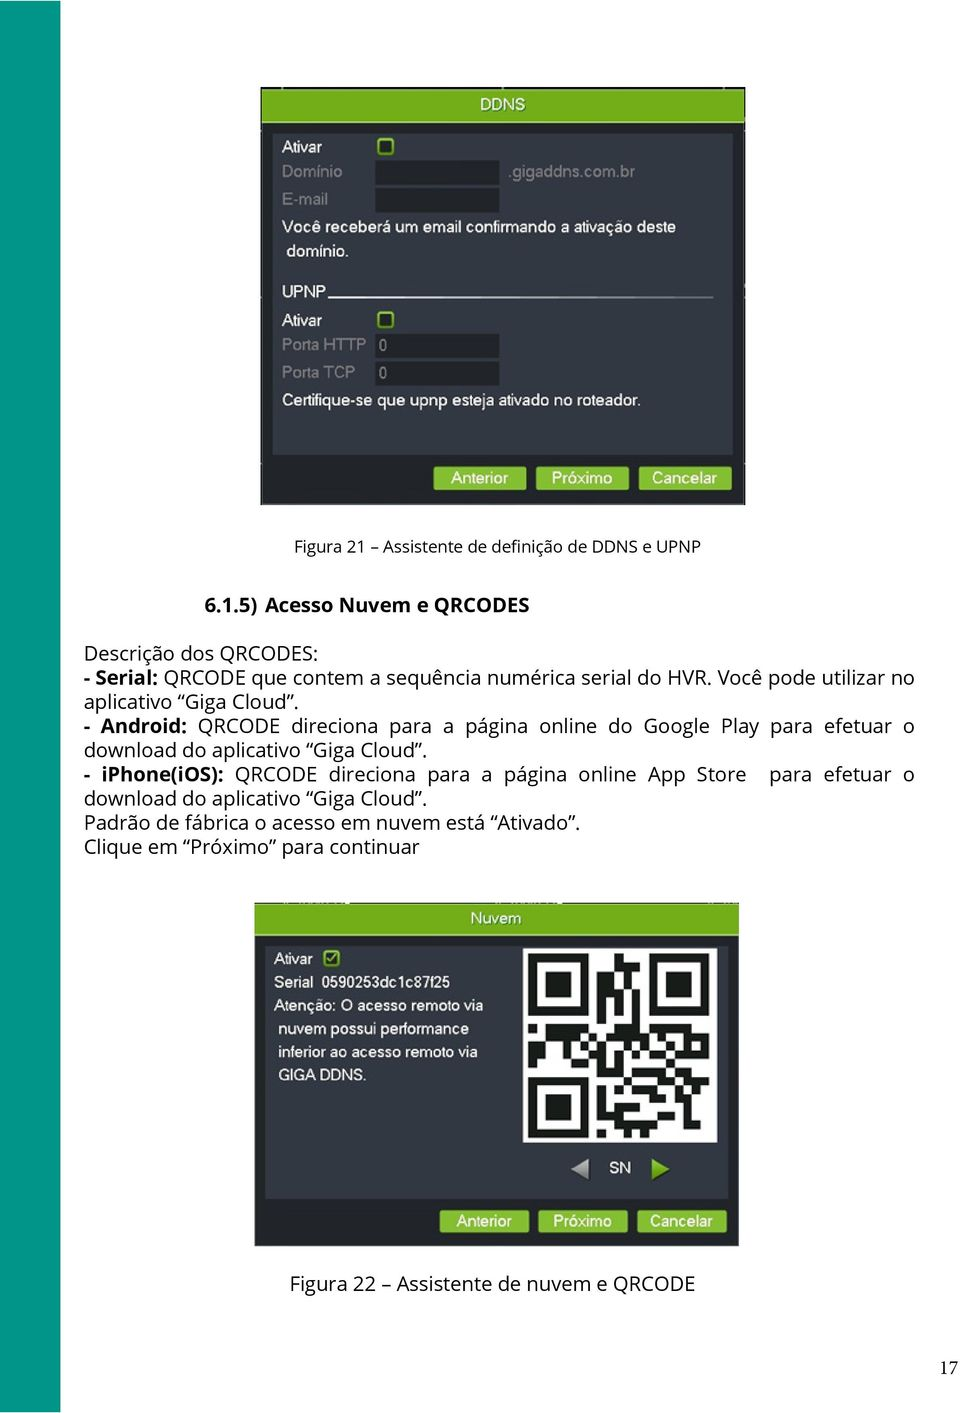 - Android: QRCODE direciona para a página online do Google Play para efetuar o download do aplicativo Giga Cloud.